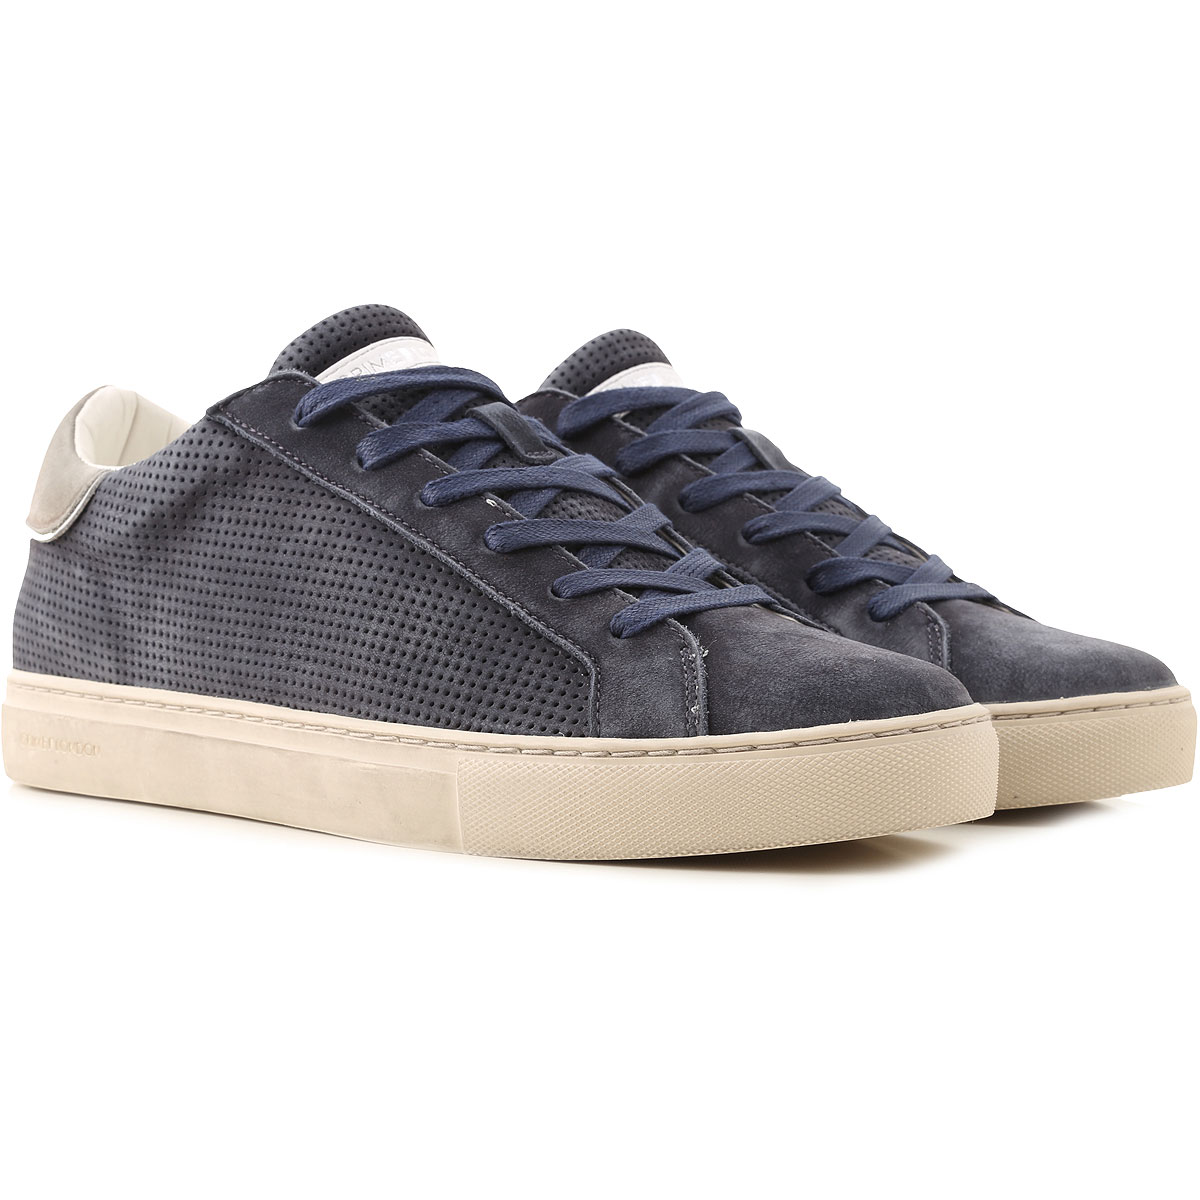 Crime Sneakers for Men On Sale, navy, Suede leather, 2019, 10.5 8 9